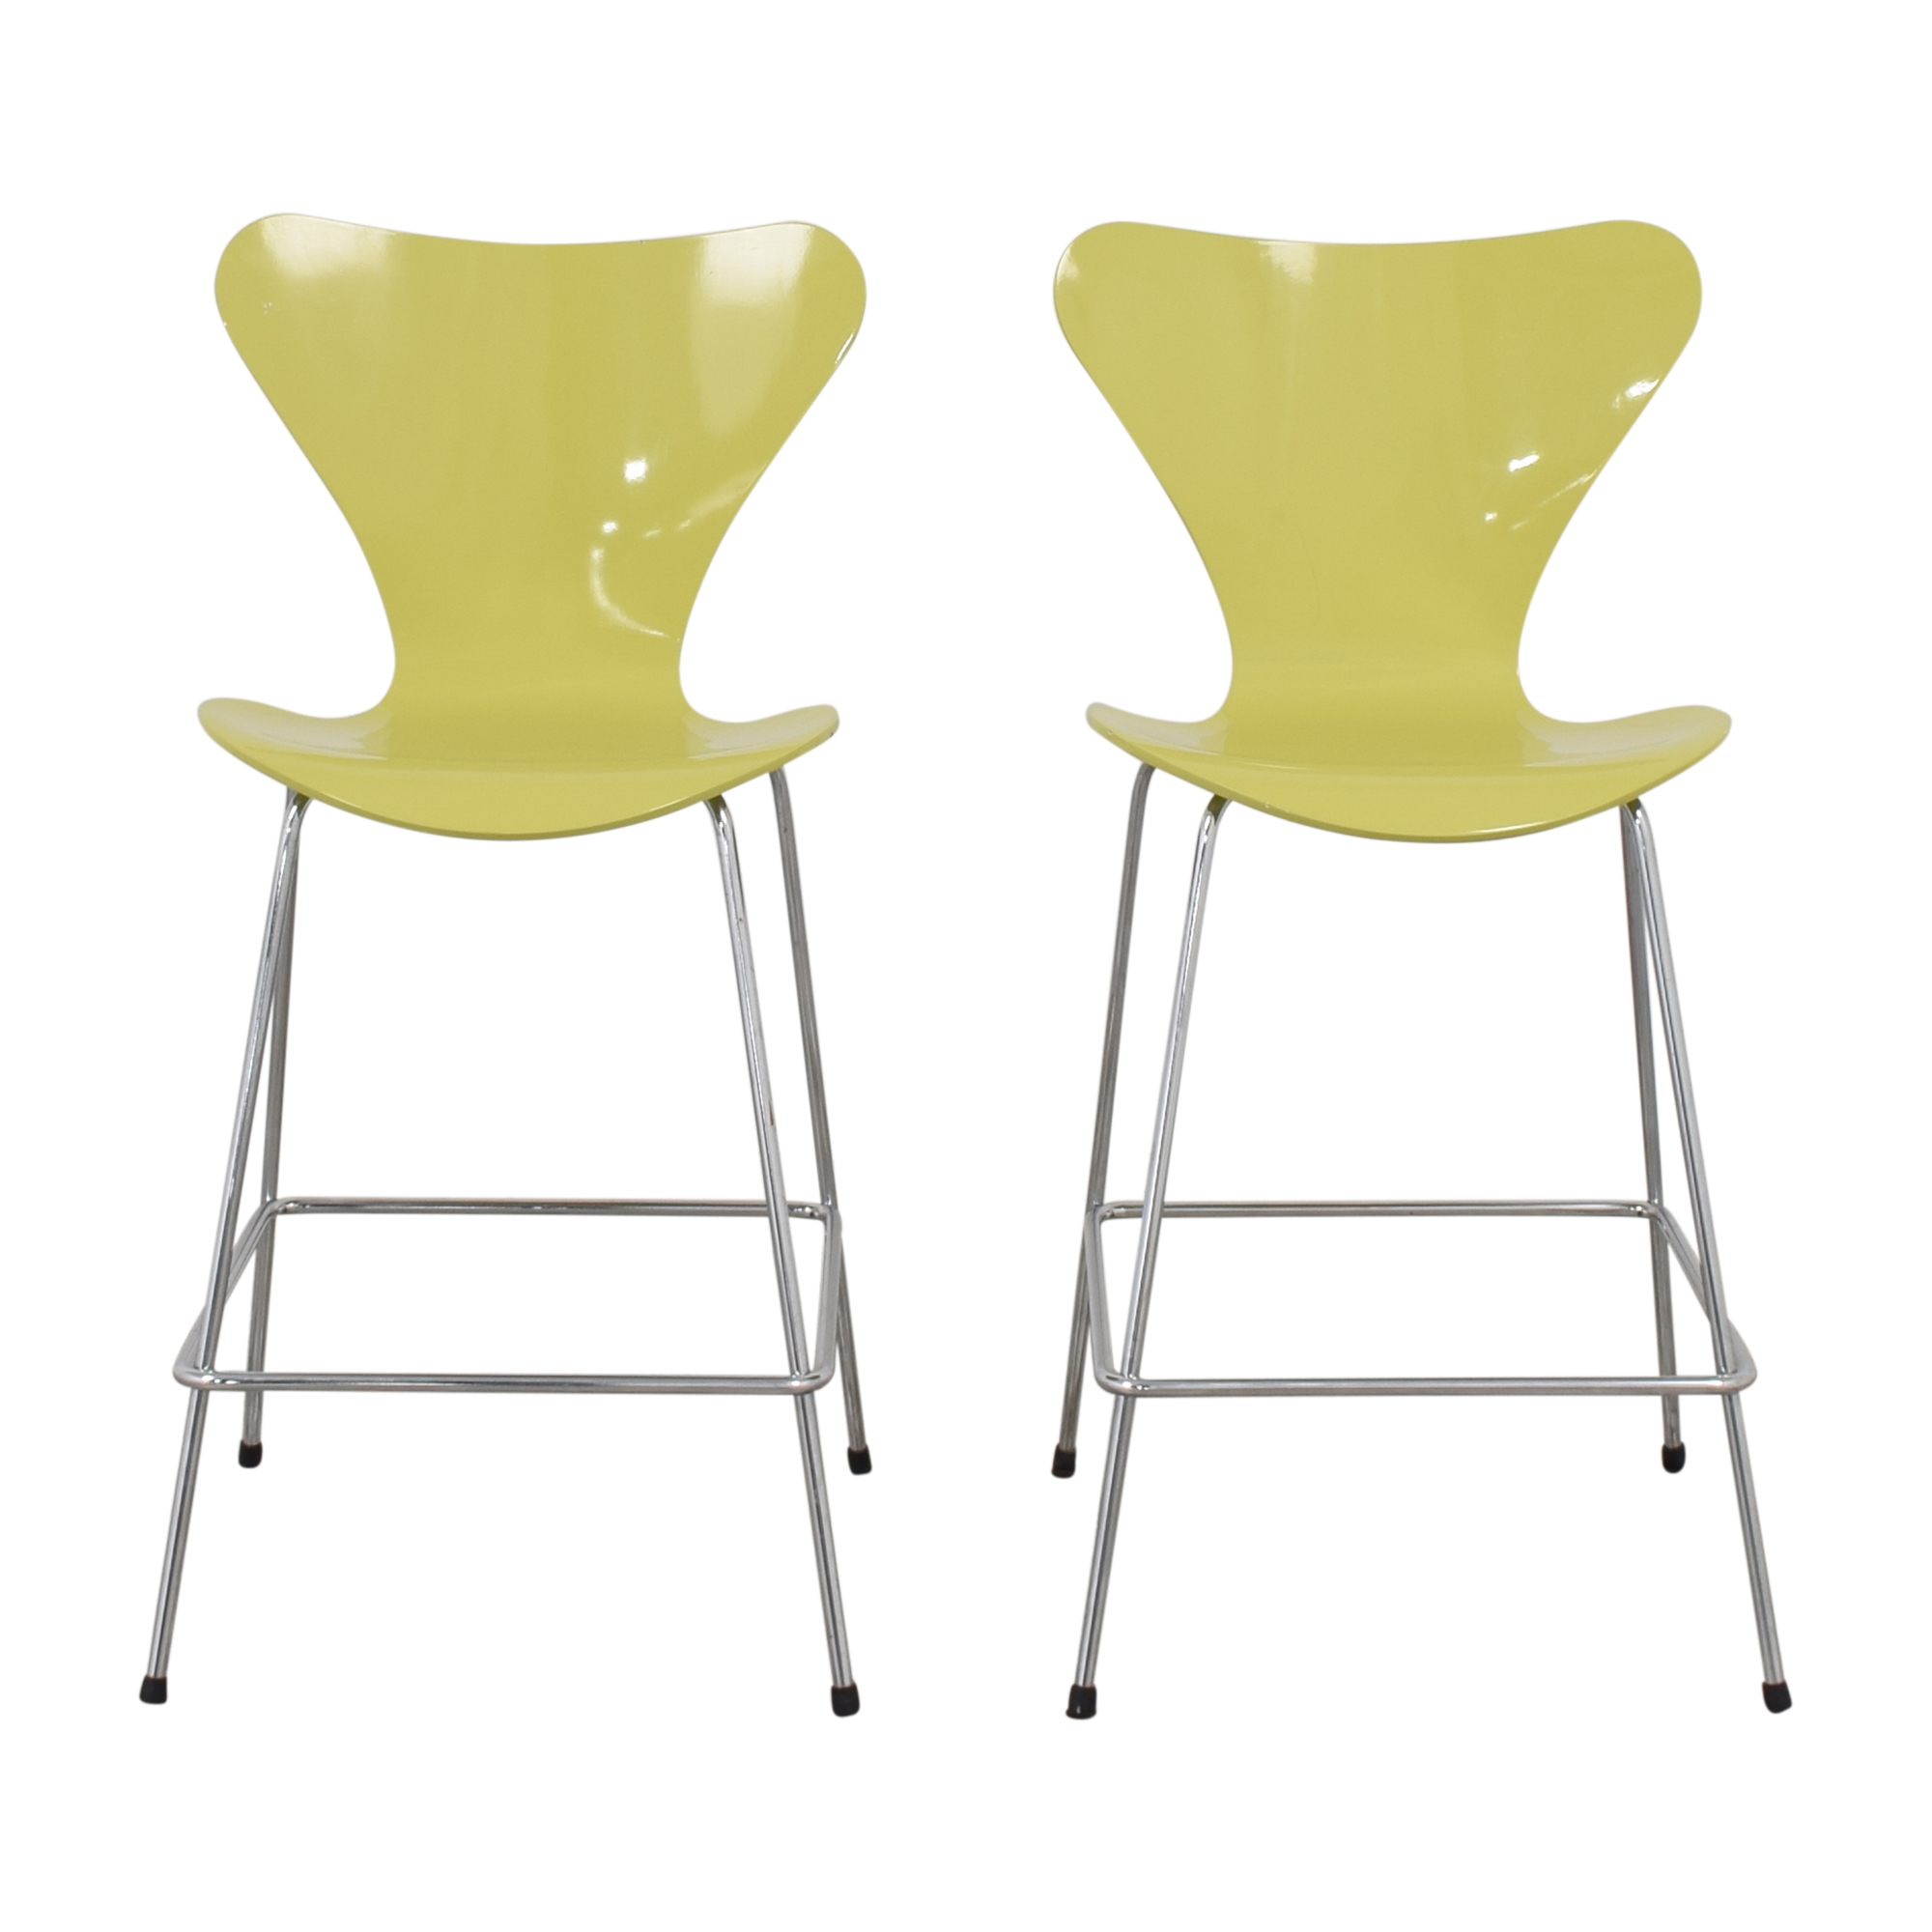 buy Arne Jacobsen for Fritz Hansen Series 7 Stools Fritz Hansen Chairs